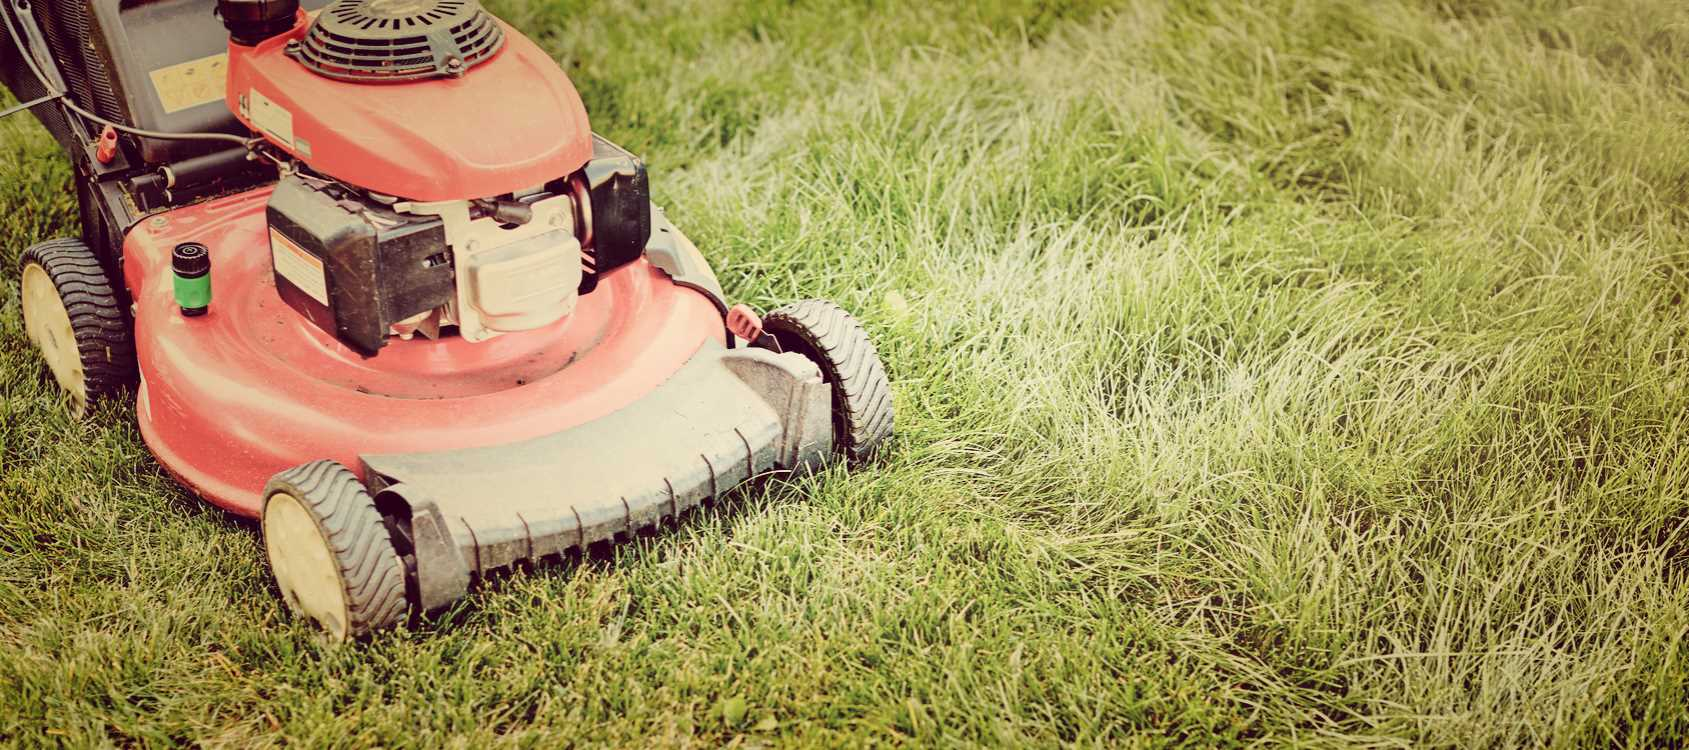 Time-Saving Lawn Care Ideas - Lawn Care Company Springfield MO